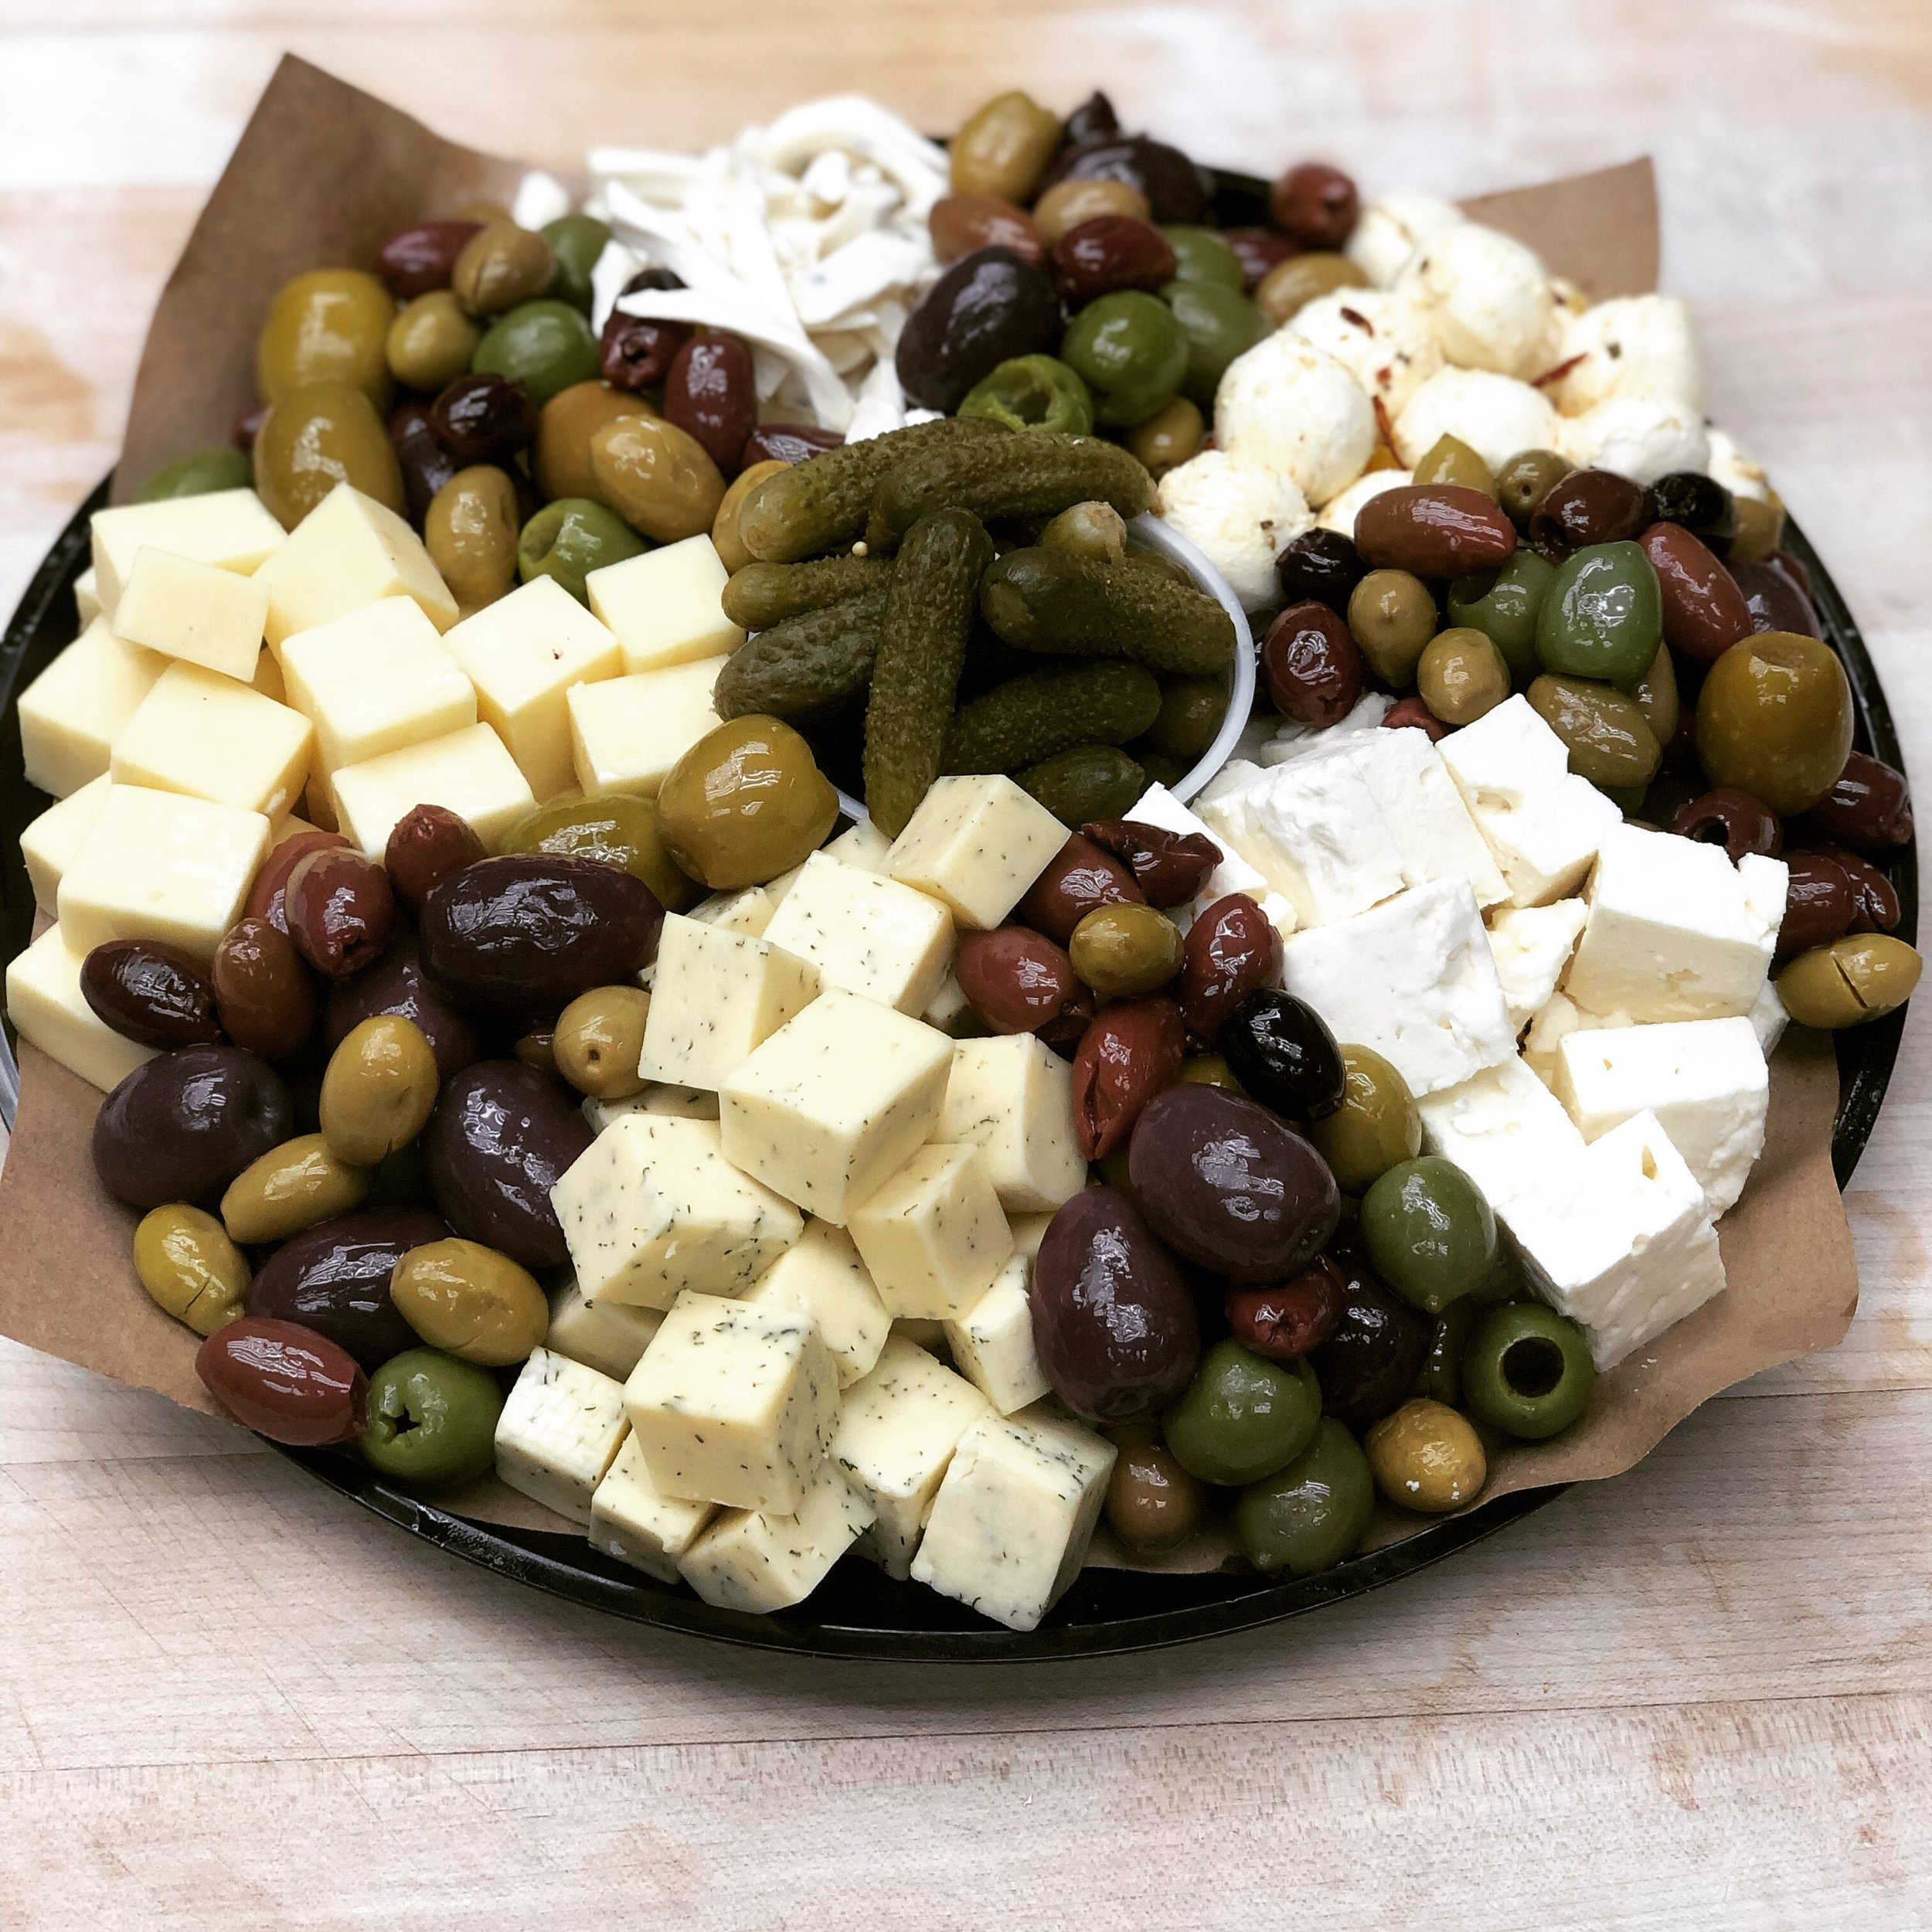 Savory Cheese and Olive Platter